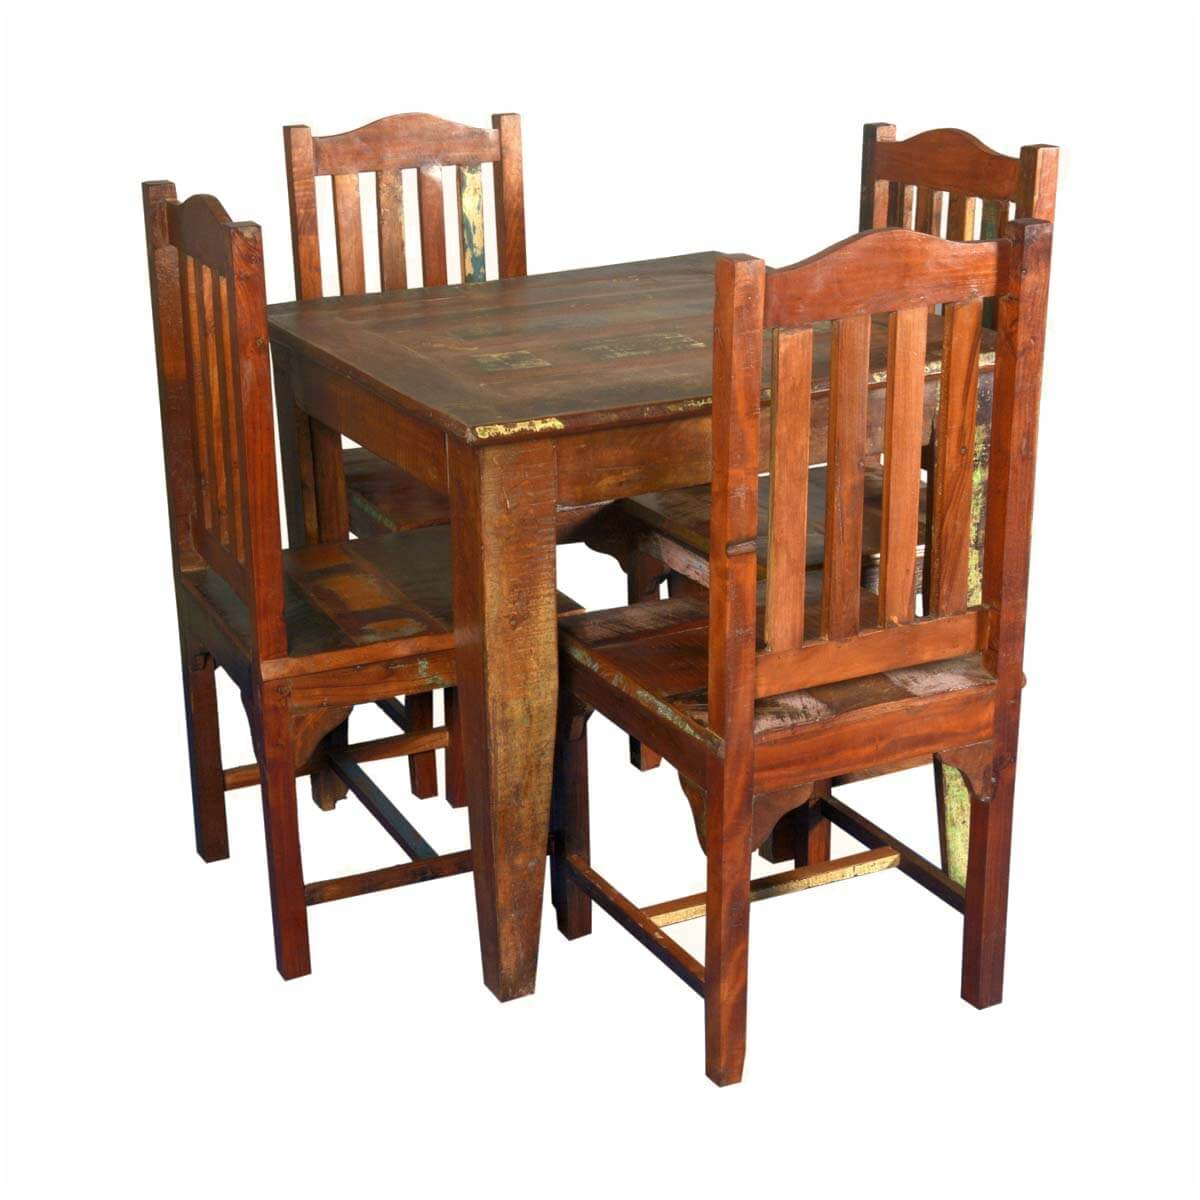 Norwalk reclaimed wood square dining table with 4 chairs set Wooden dining table and chairs